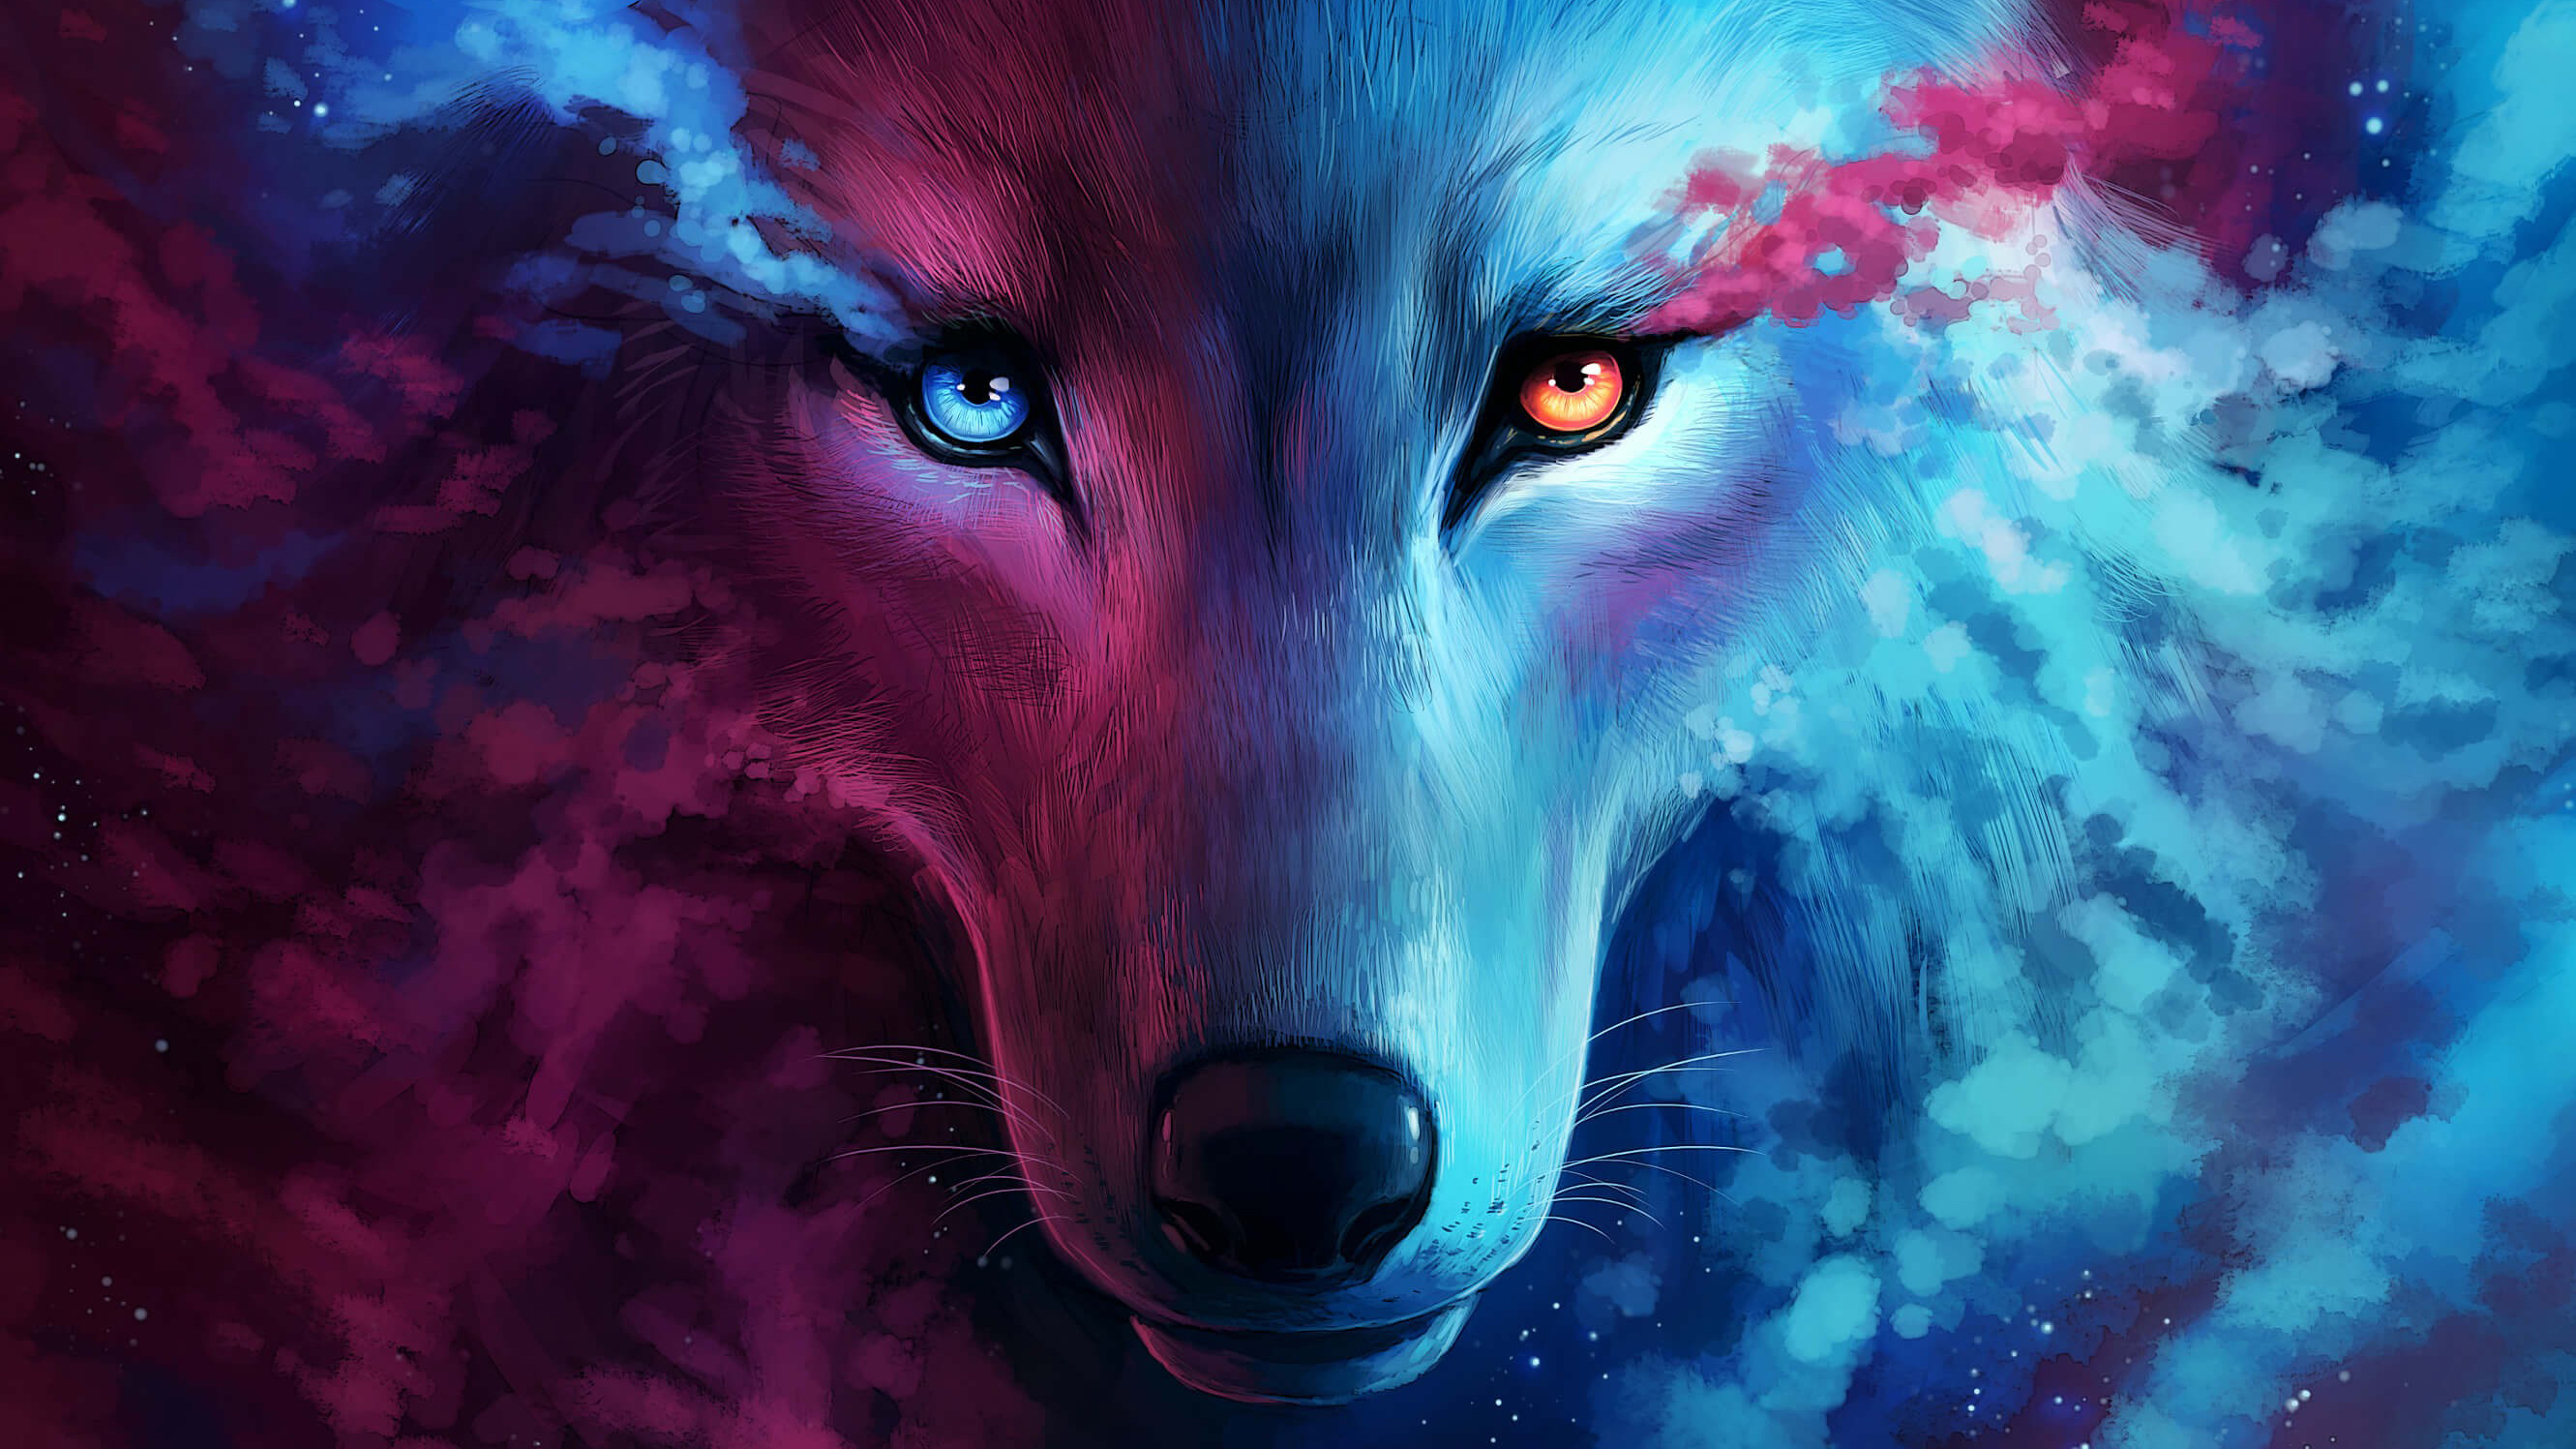 The Galaxy Wolf Hd Artist 4k Wallpapers Images Backgrounds Photos And Pictures